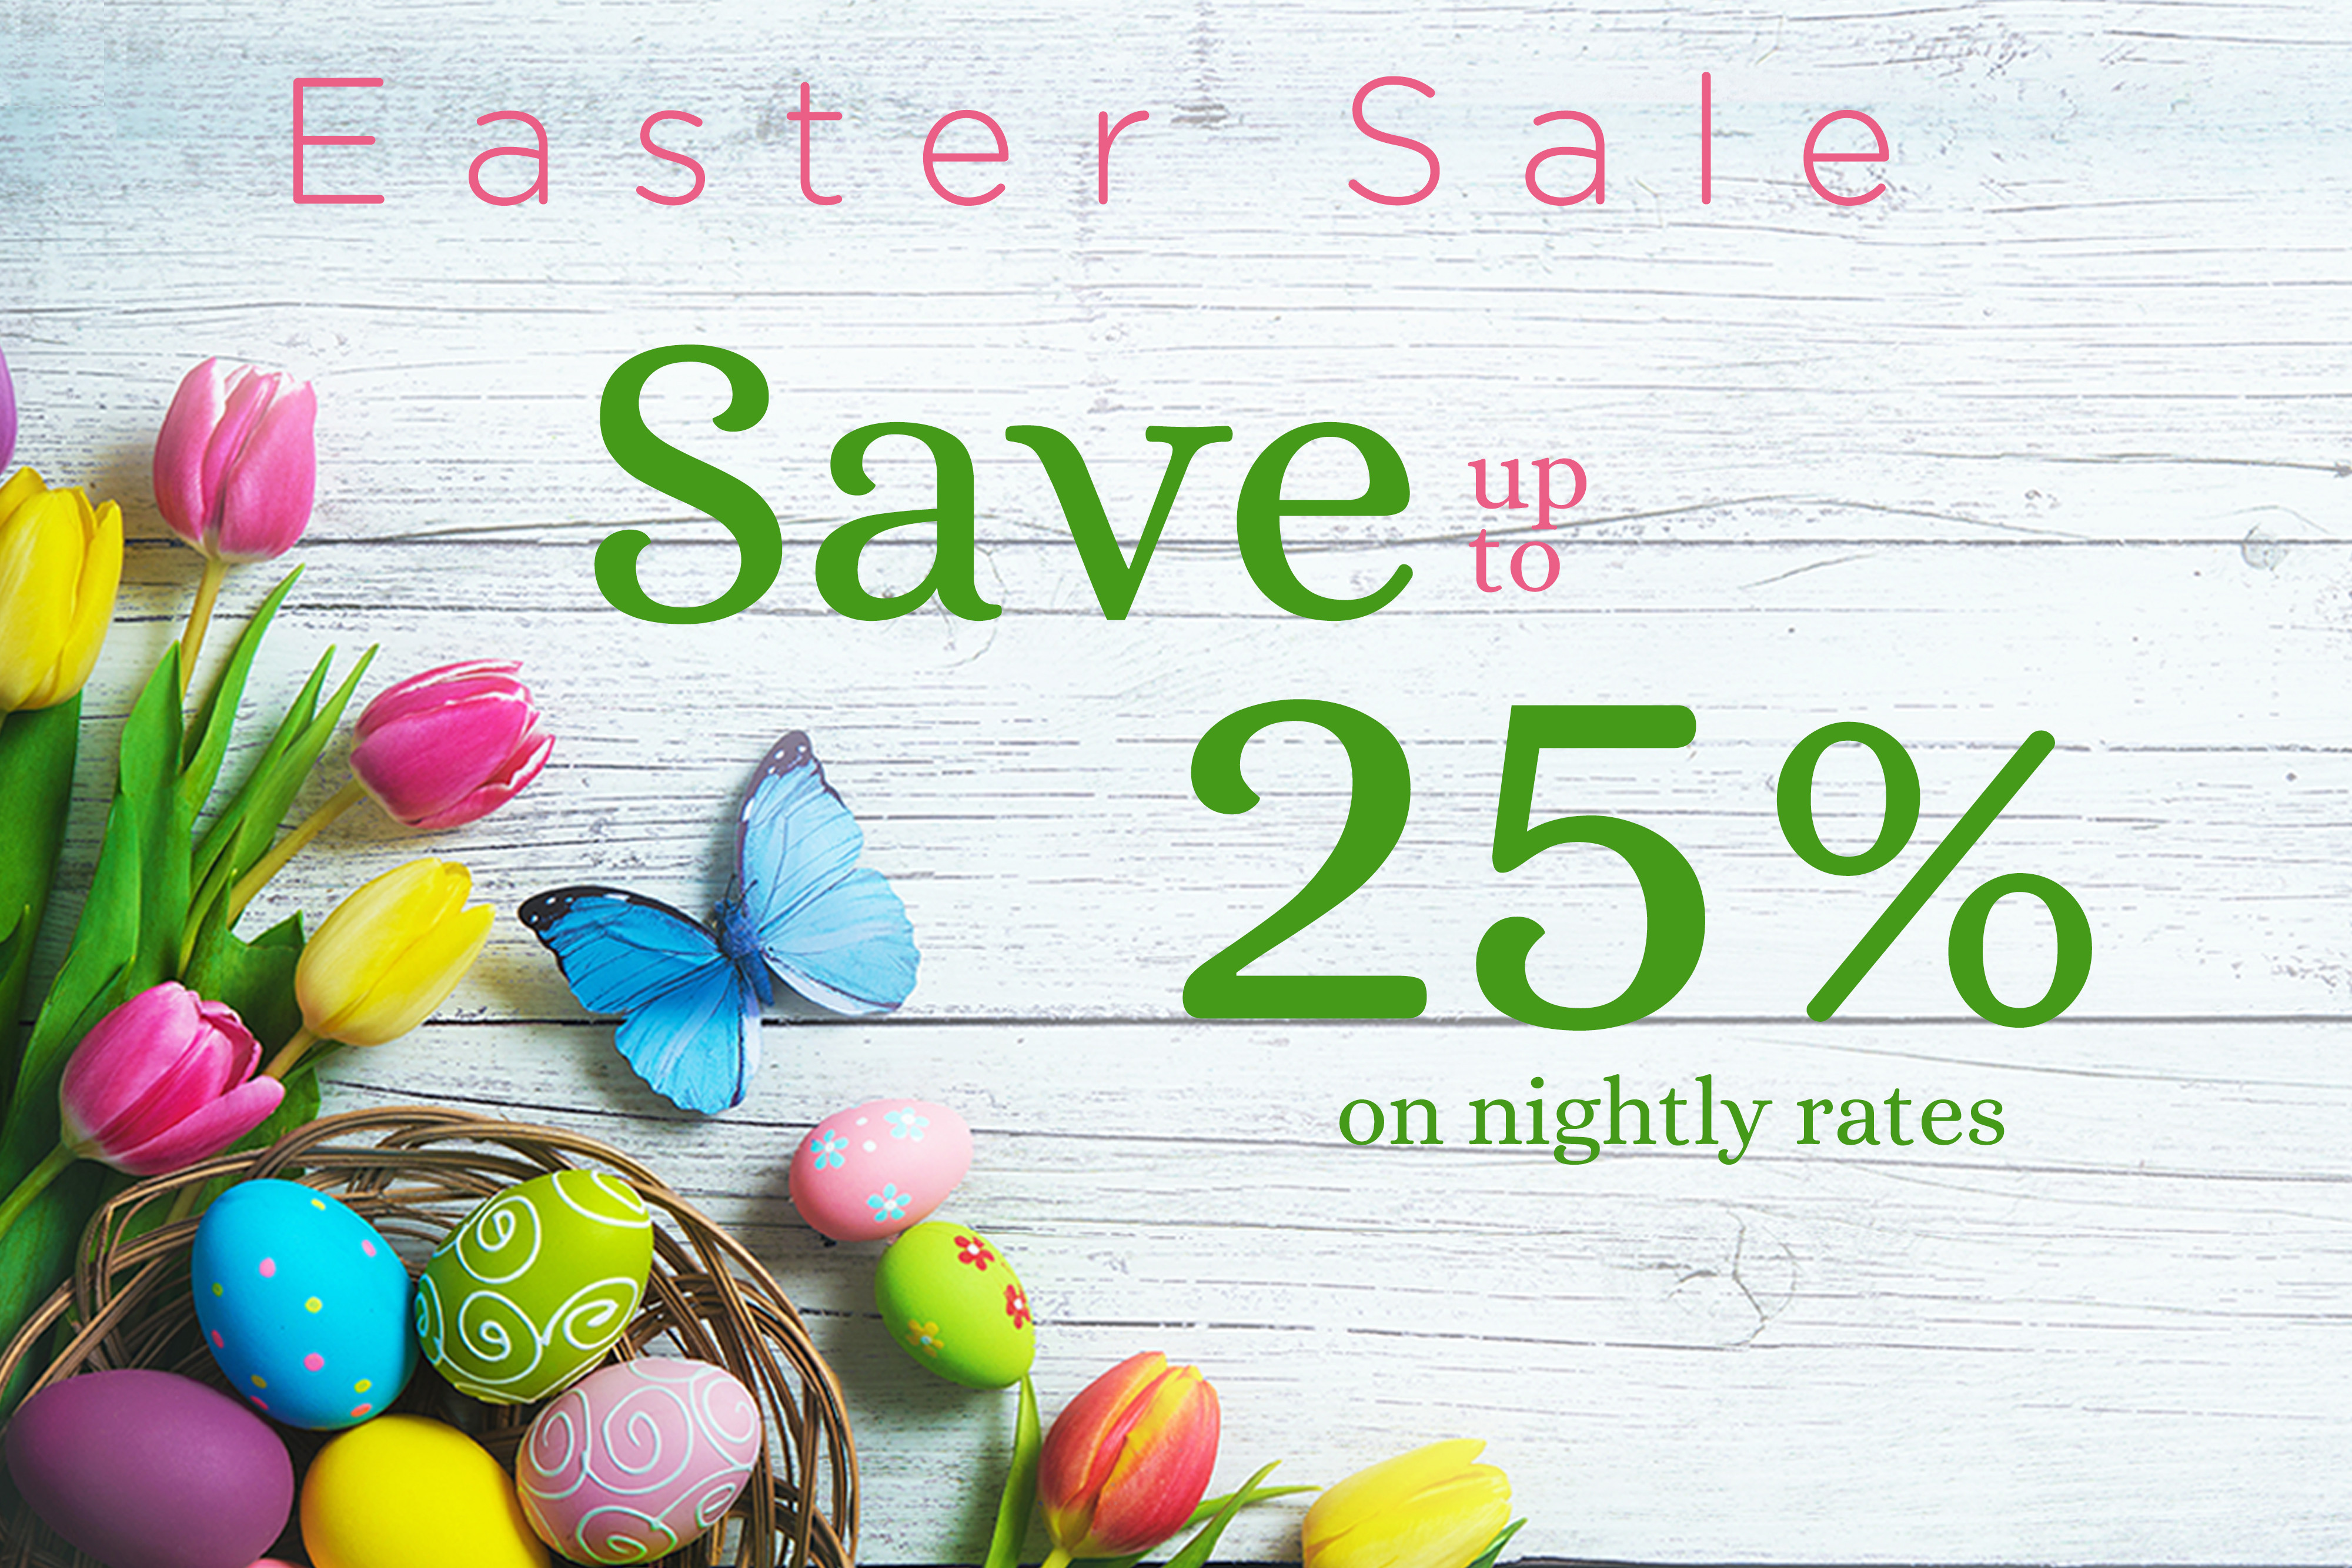 Last Minute Easter 2019 Hotel Rates Save Up to 25% Off on Nightly Rates with Westgate Resorts